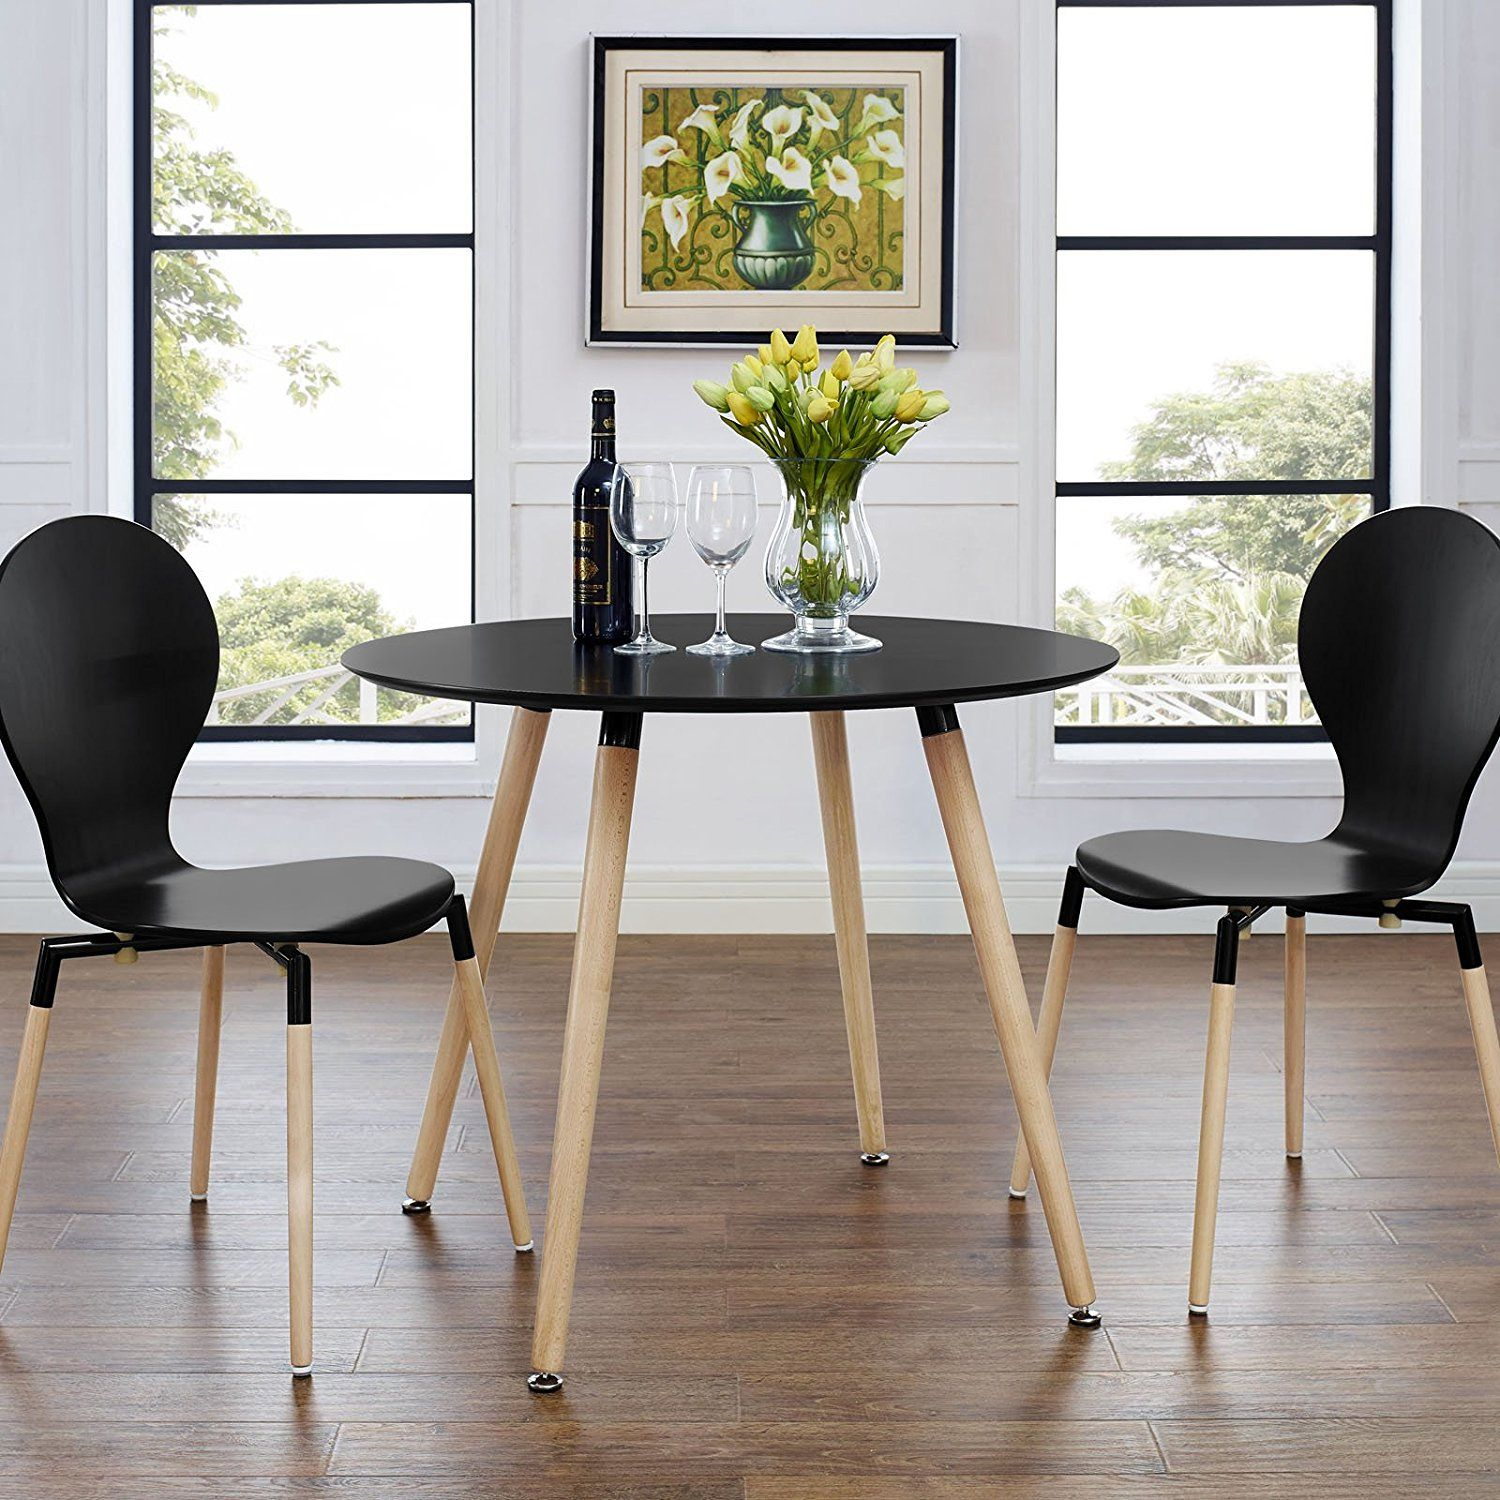 Round dining tables for small spaces most popular interior paint colors check more at http